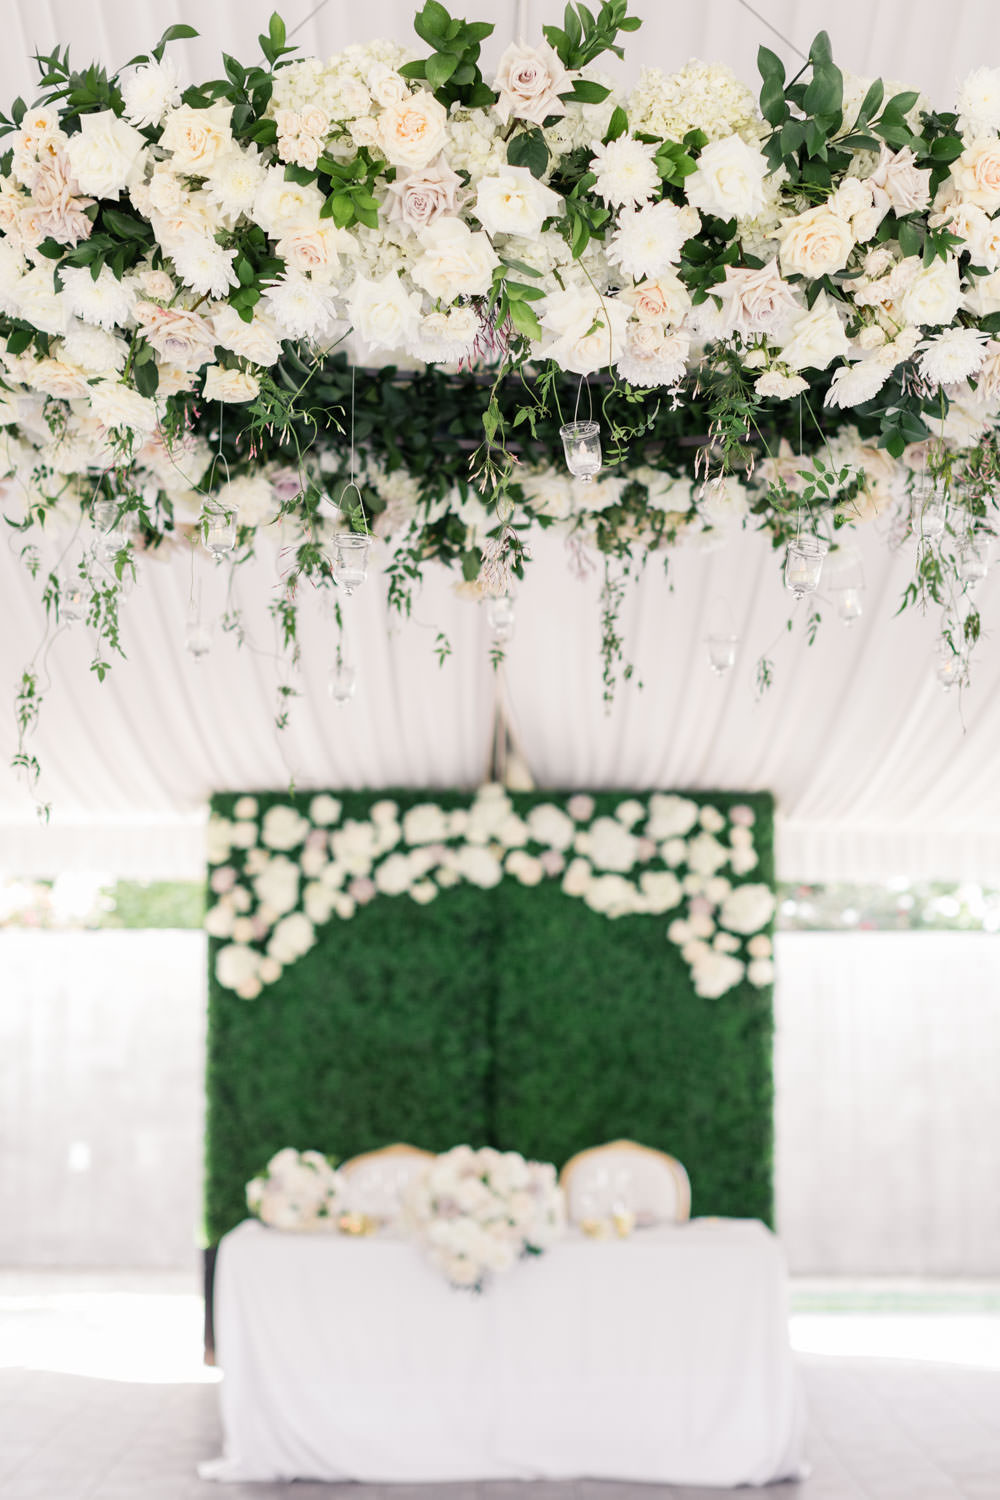 Floral chandelier with white roses and greenery and luxury sweetheart table with green hedge backdrop, Cavin Elizabeth Photography